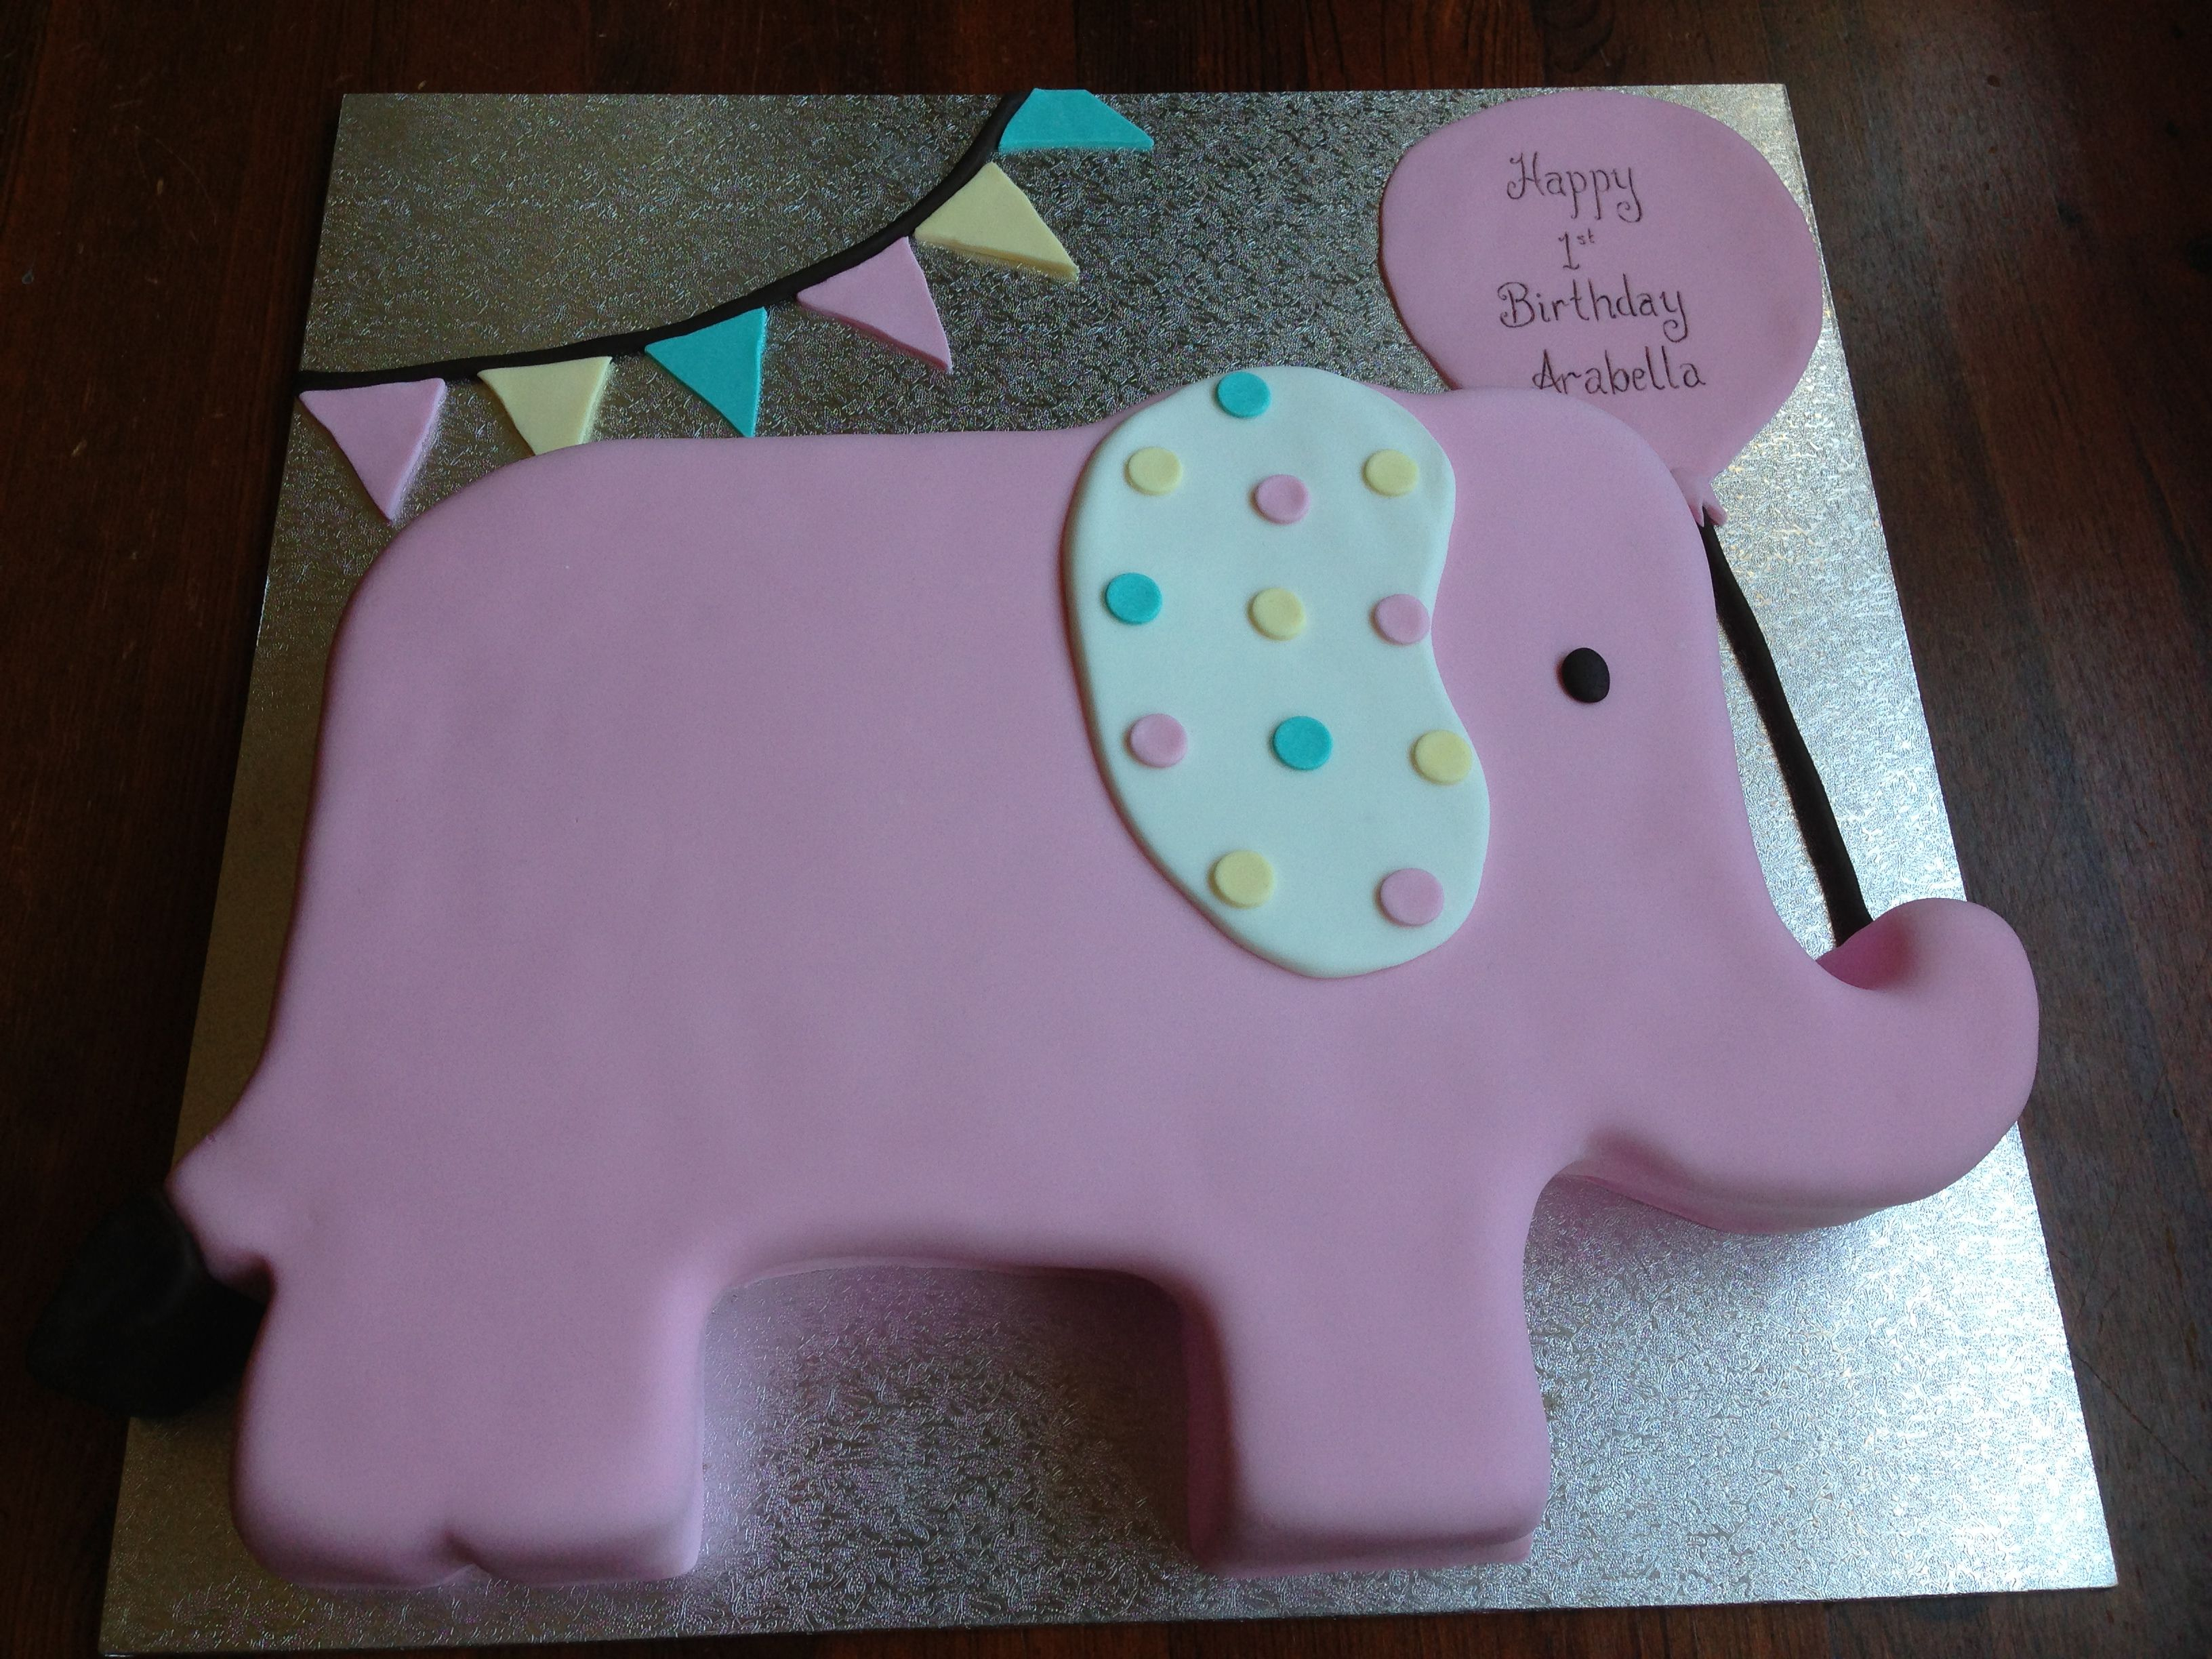 Elephant Birthday Cakes Elephant Birthday Cake With Bunting Banner Perfect For A First